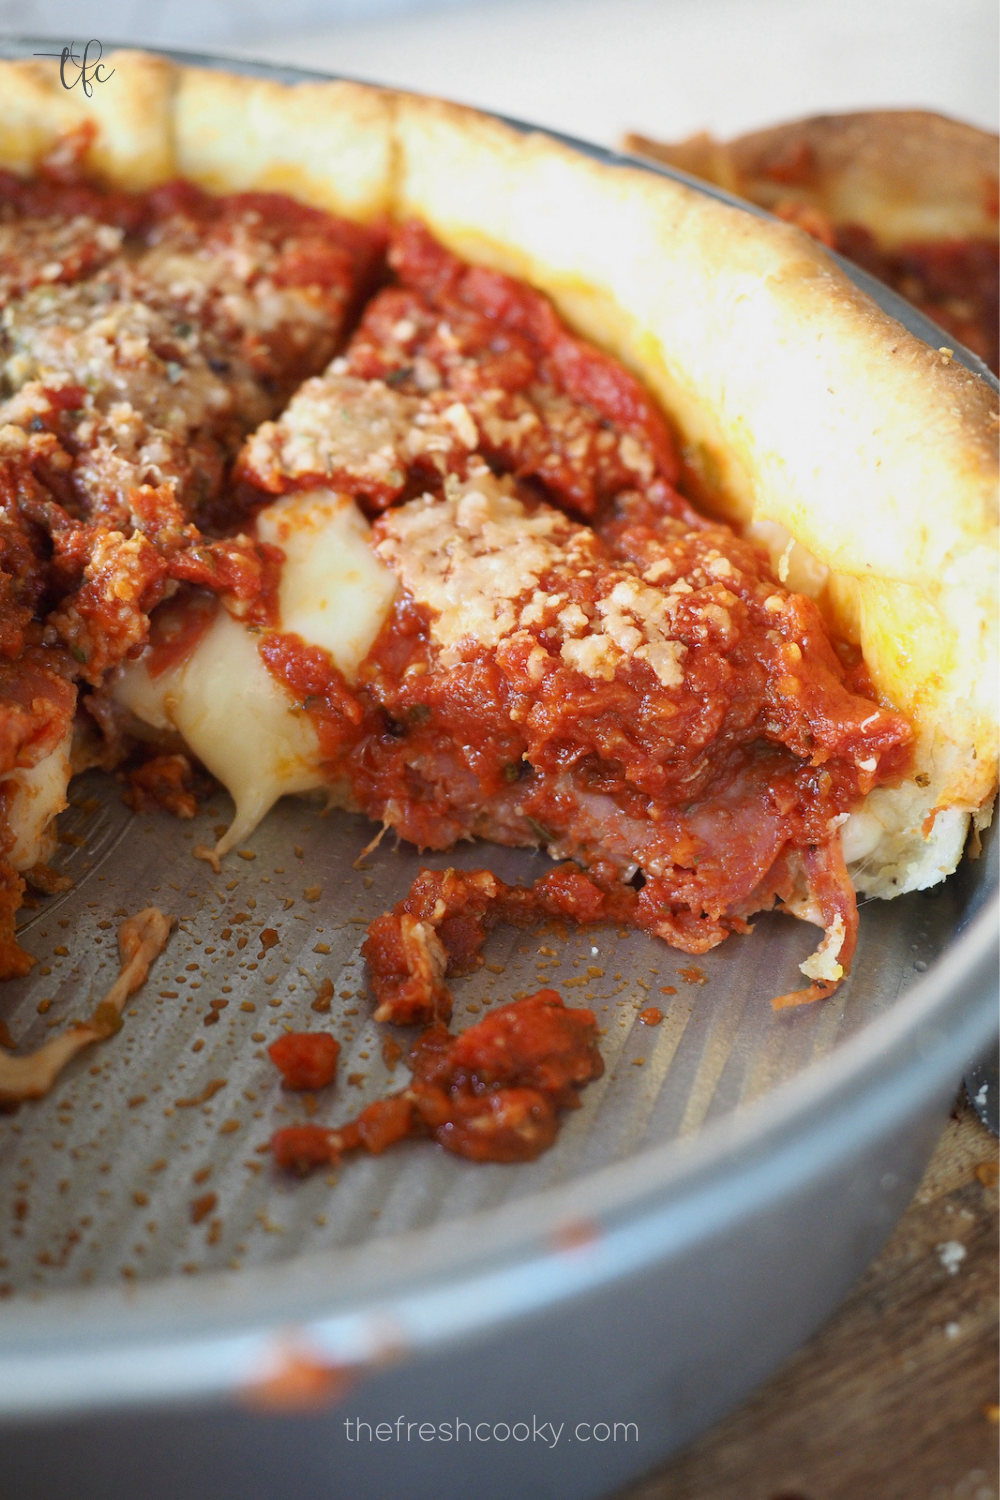 Chicago style deep dish pizza in pan with a slice removed and melting cheese and pepperoni oozing from slice.